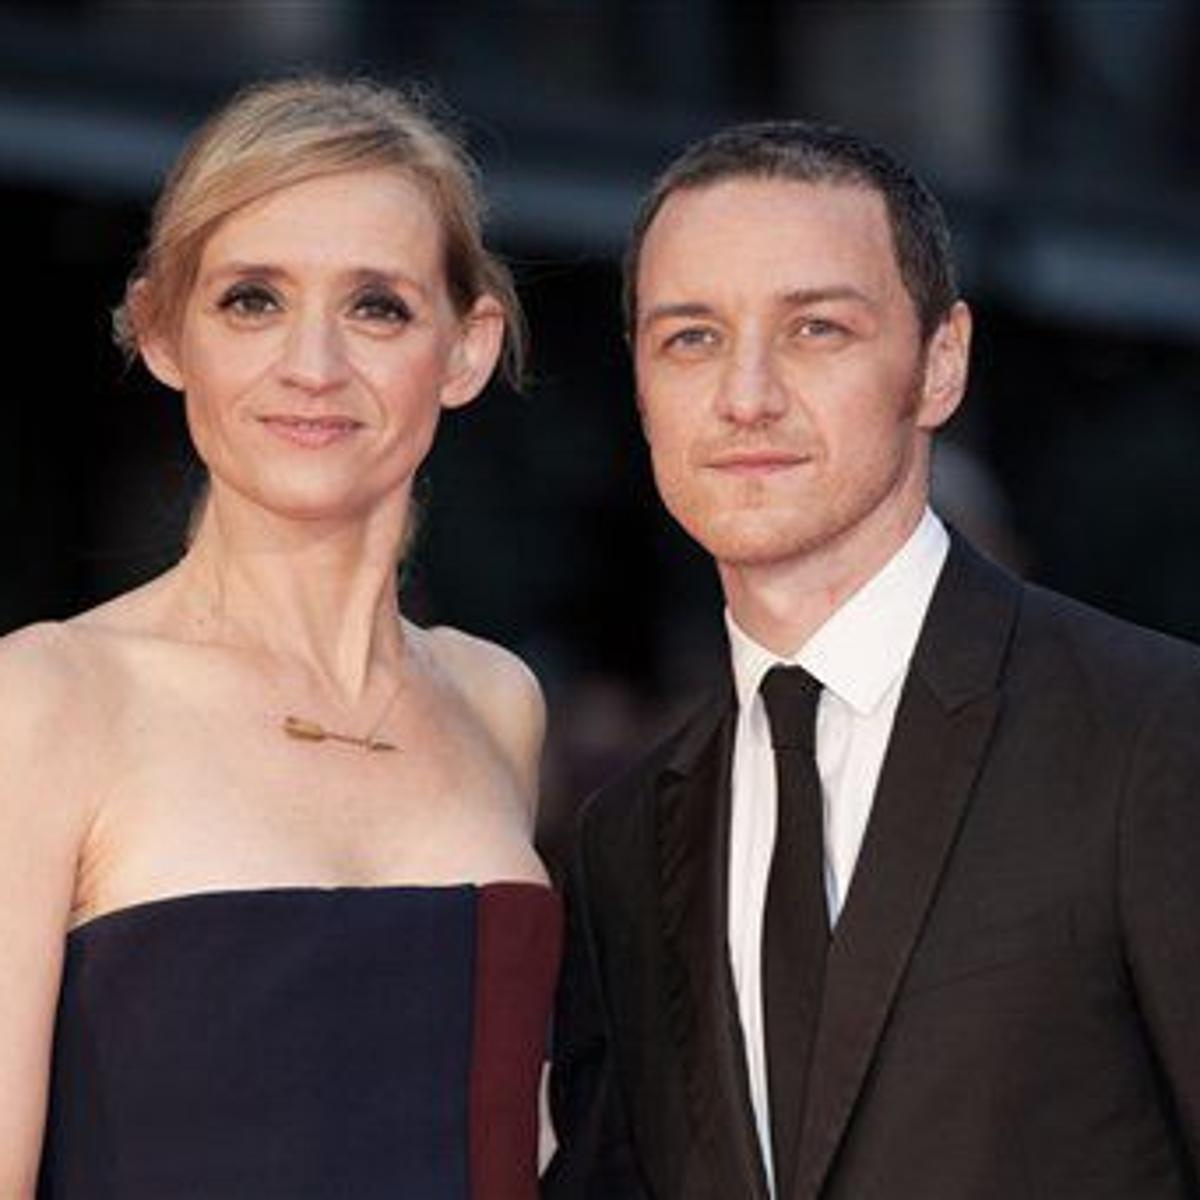 James Mcavoy And Anne Marie Duff Wedding